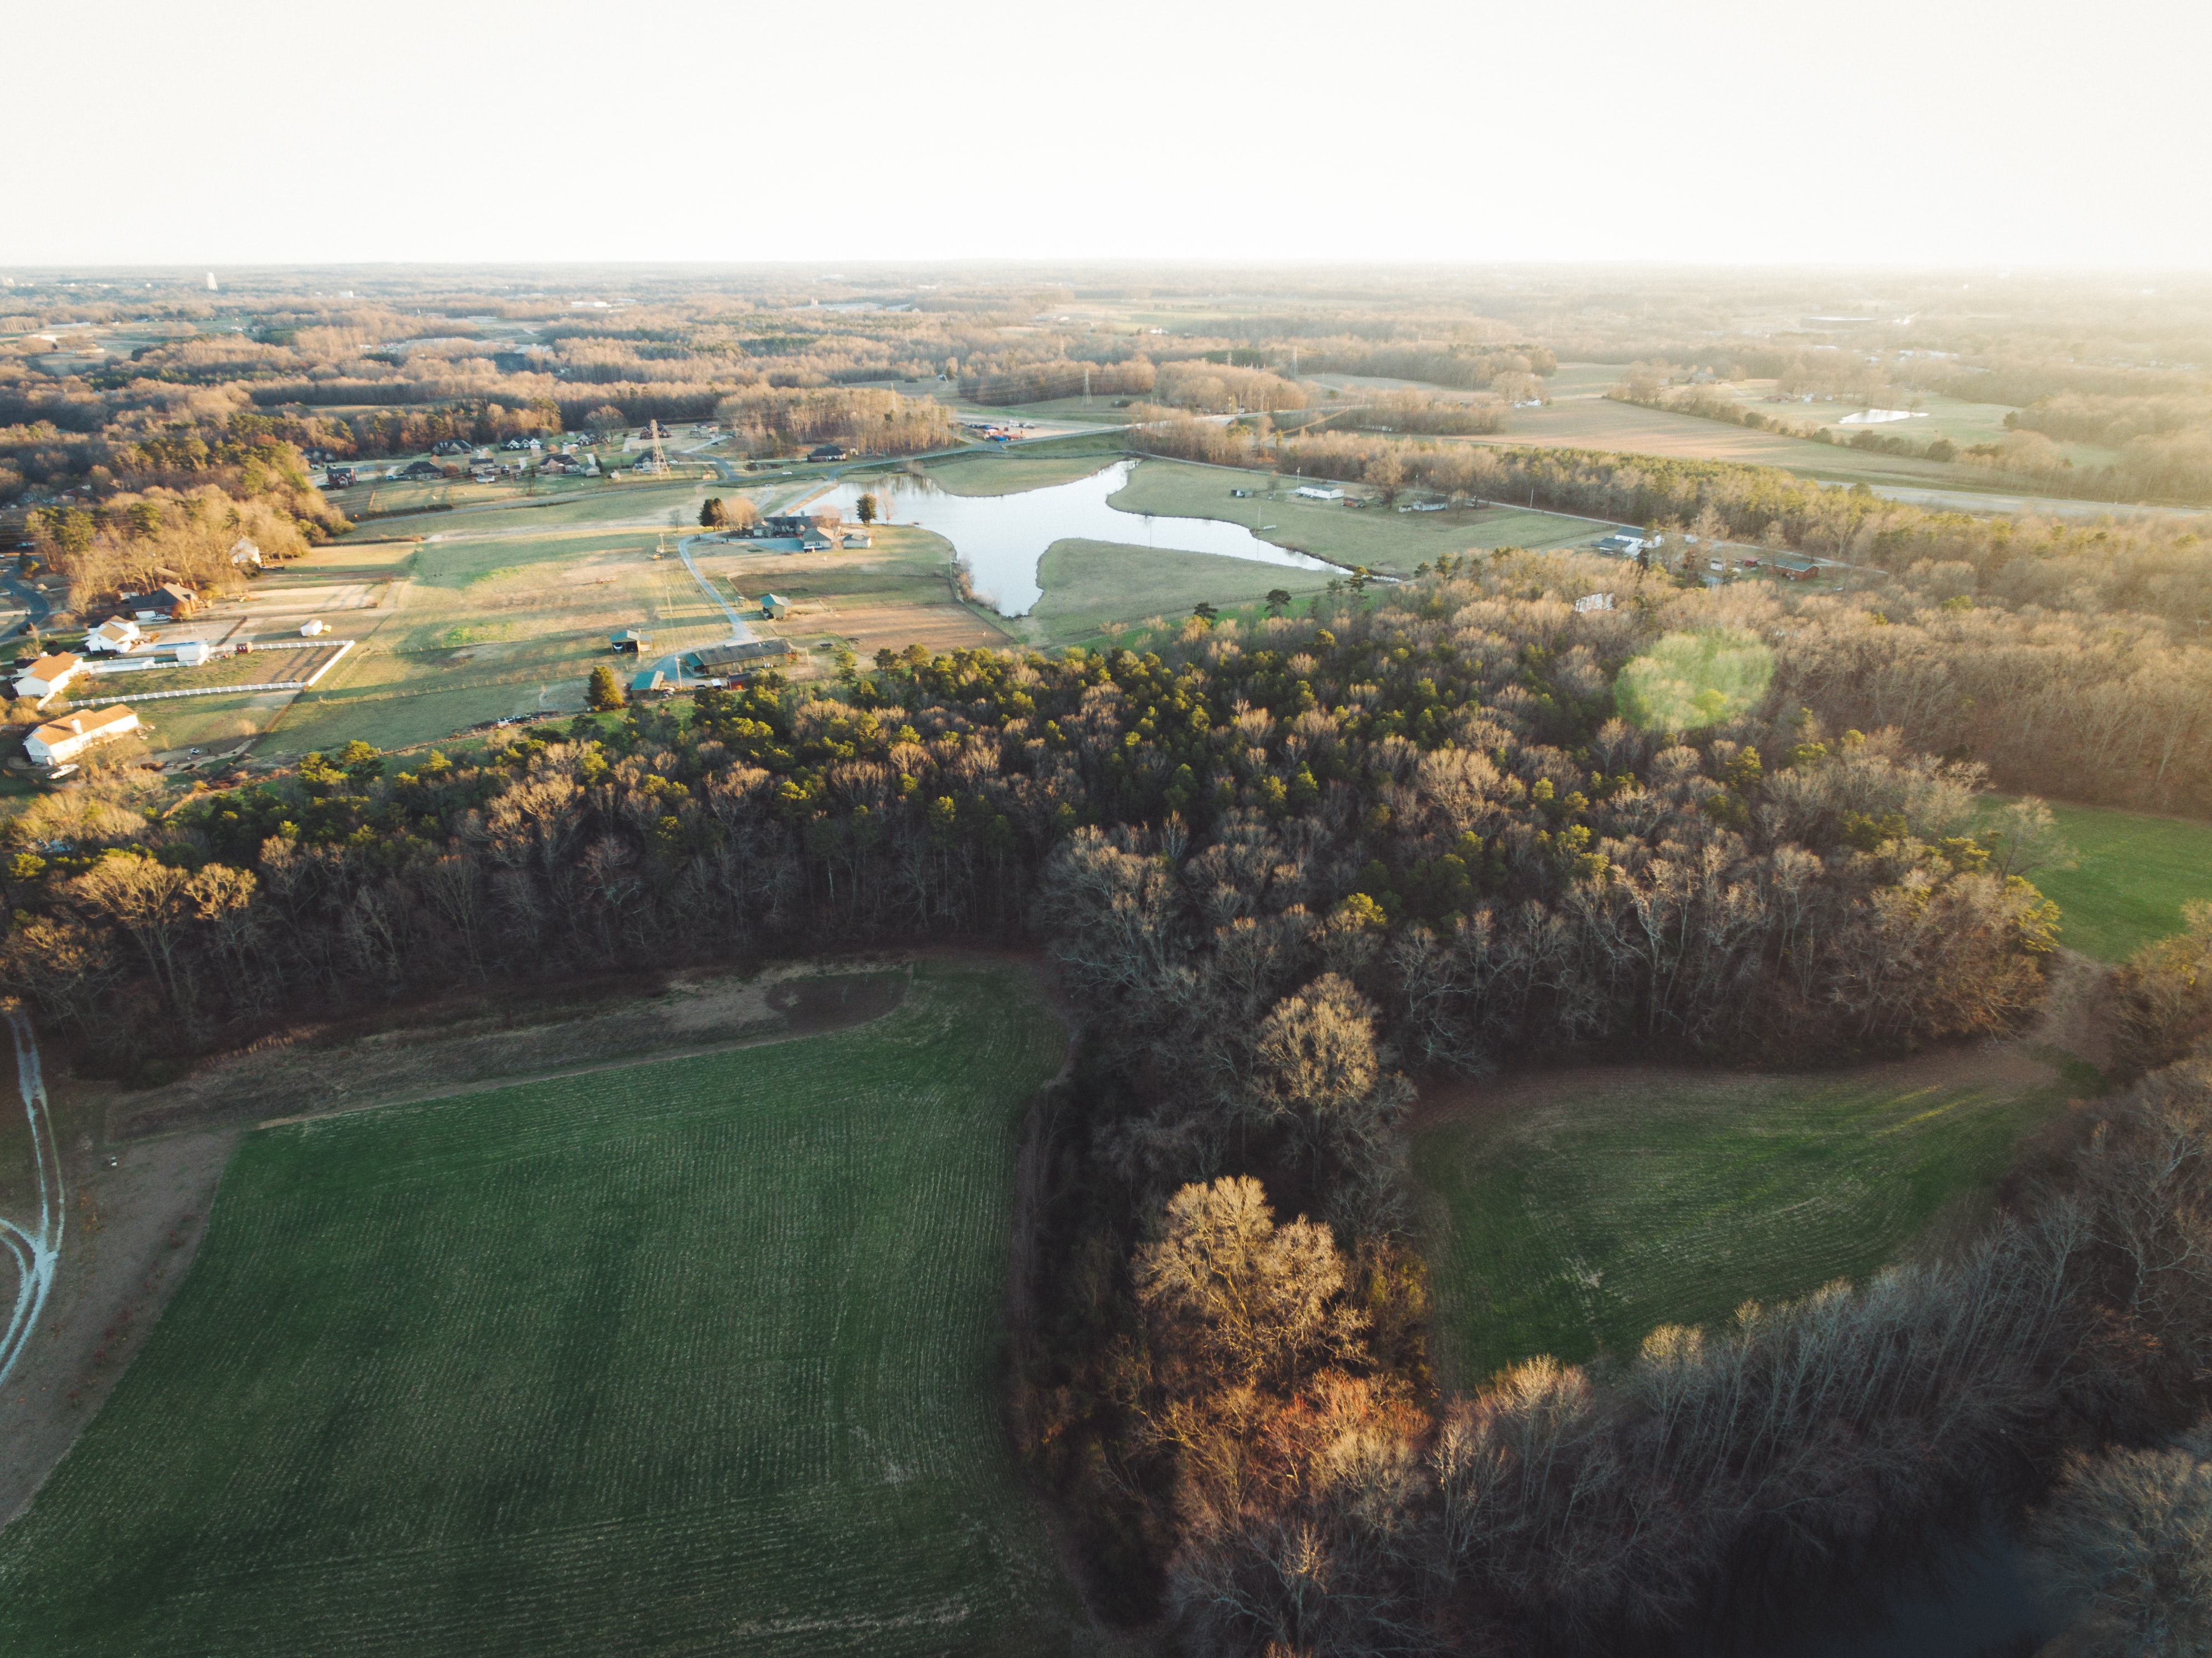 aerial photography of green trees and field during daytime